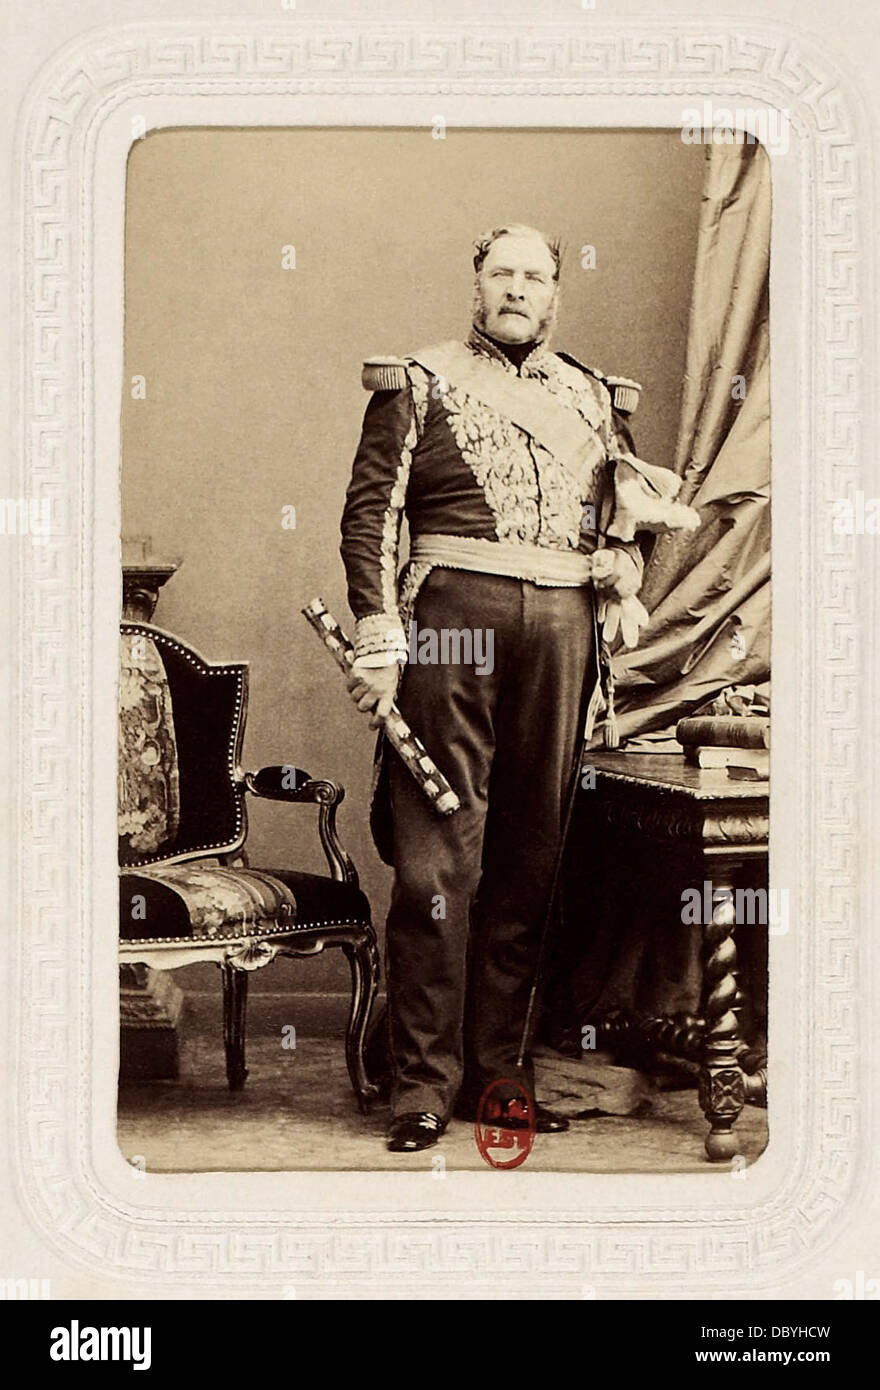 Bernard Pierre Magnan, (1791-1865), Marshal of France. - Stock Image